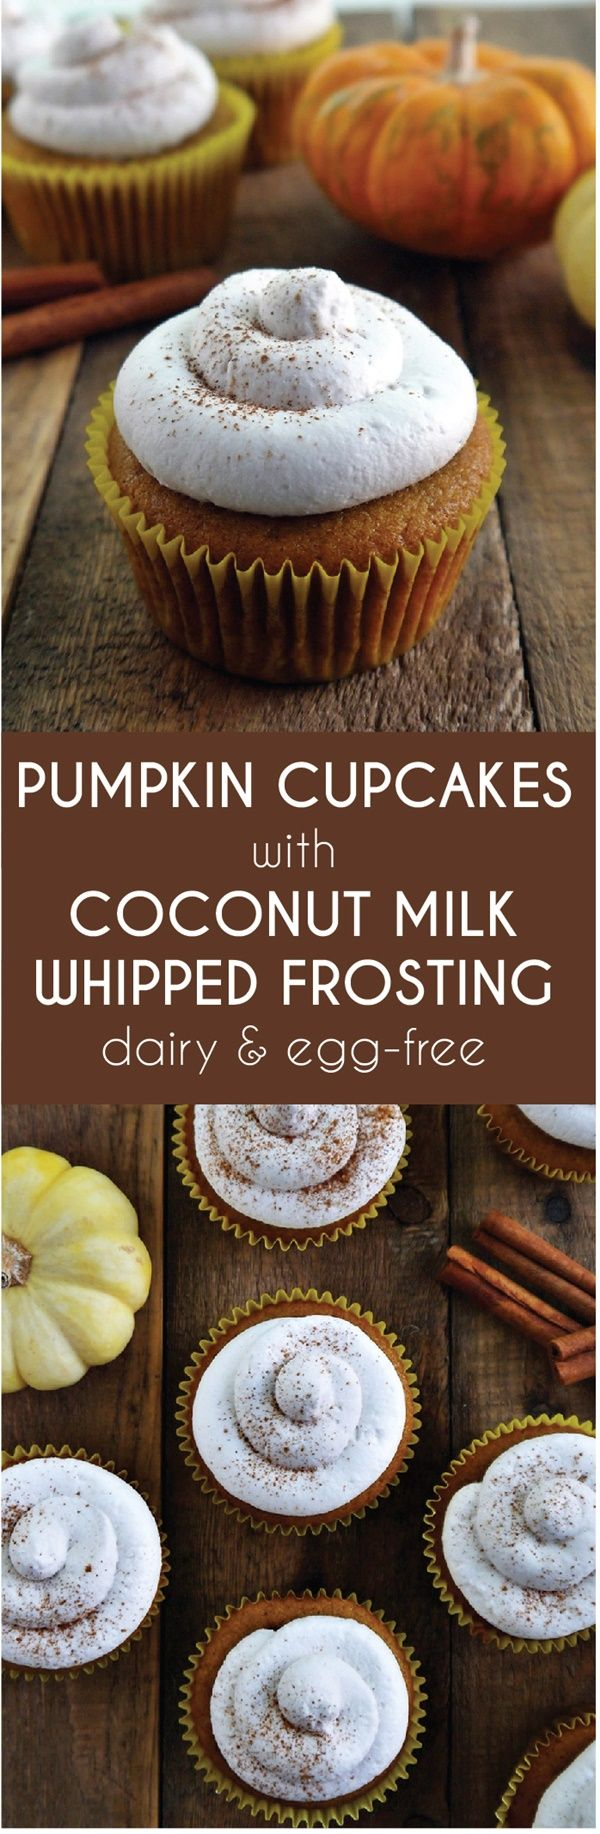 Vegan Pumpkin Cupcakes - Try this easy and delicious pumpkin and spice filled treat this fall! It's topped with a coconut milk whipped cream to make this cupcake reminiscent of pumpkin pie.